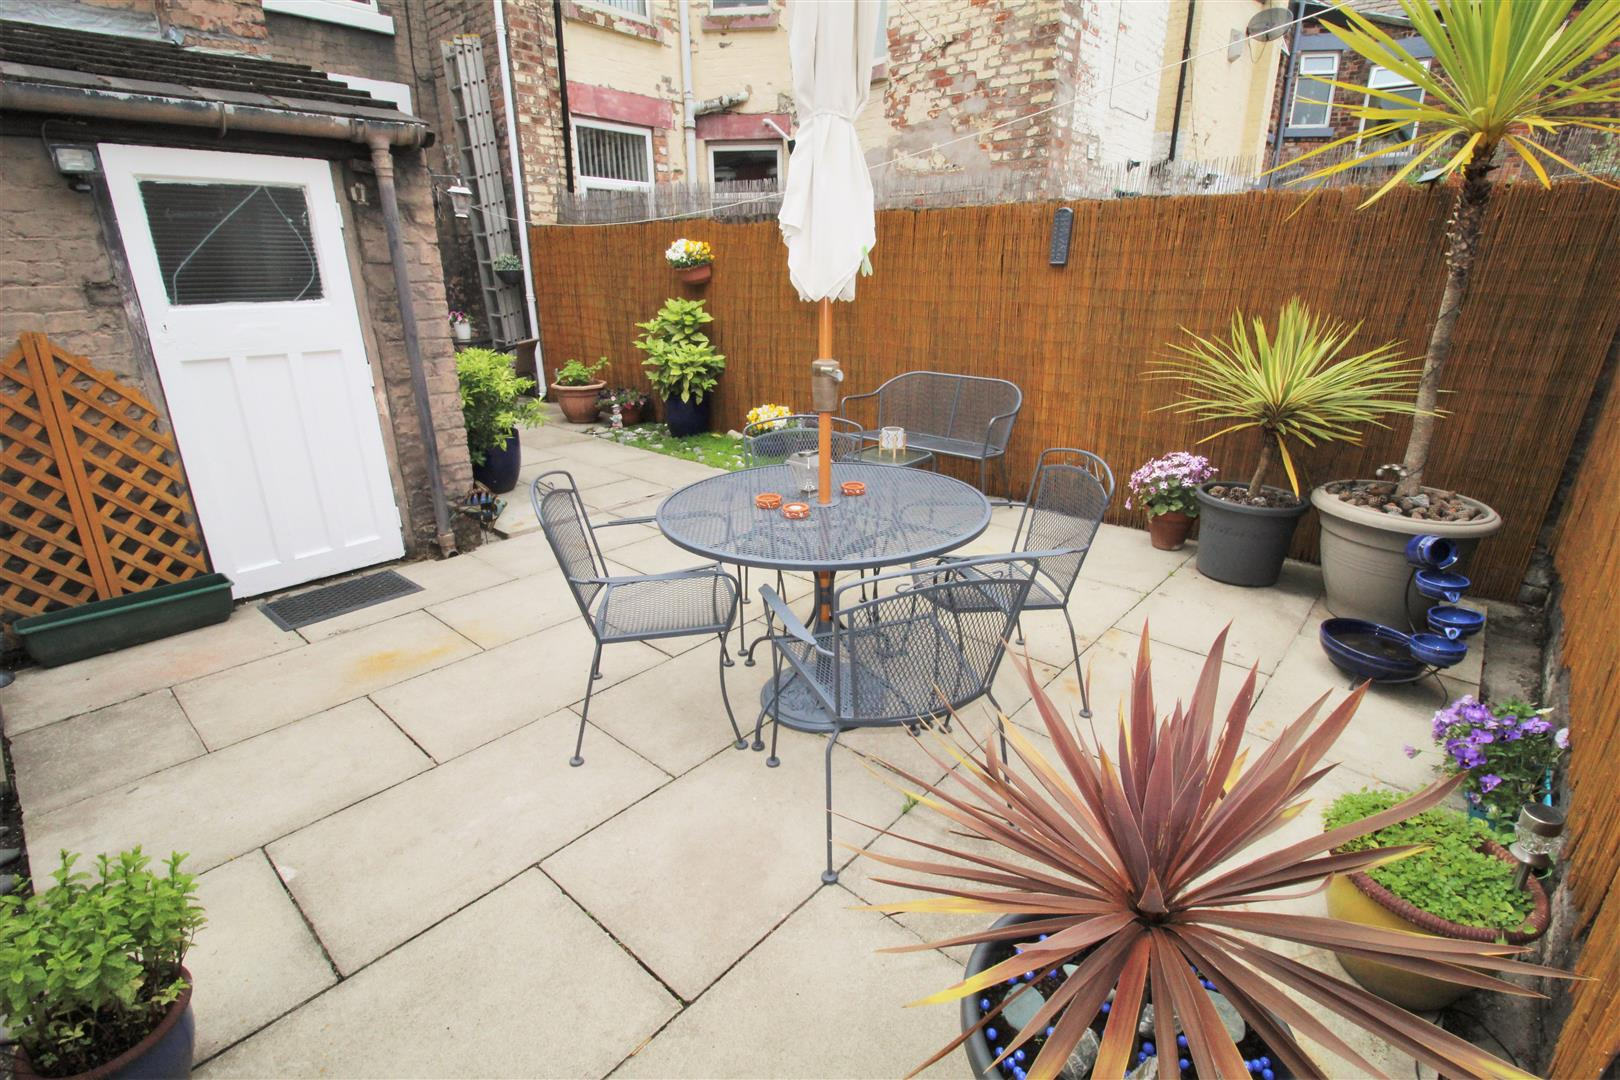 4 Bedrooms, House - Terraced, Willowdale Road, Walton, Liverpool